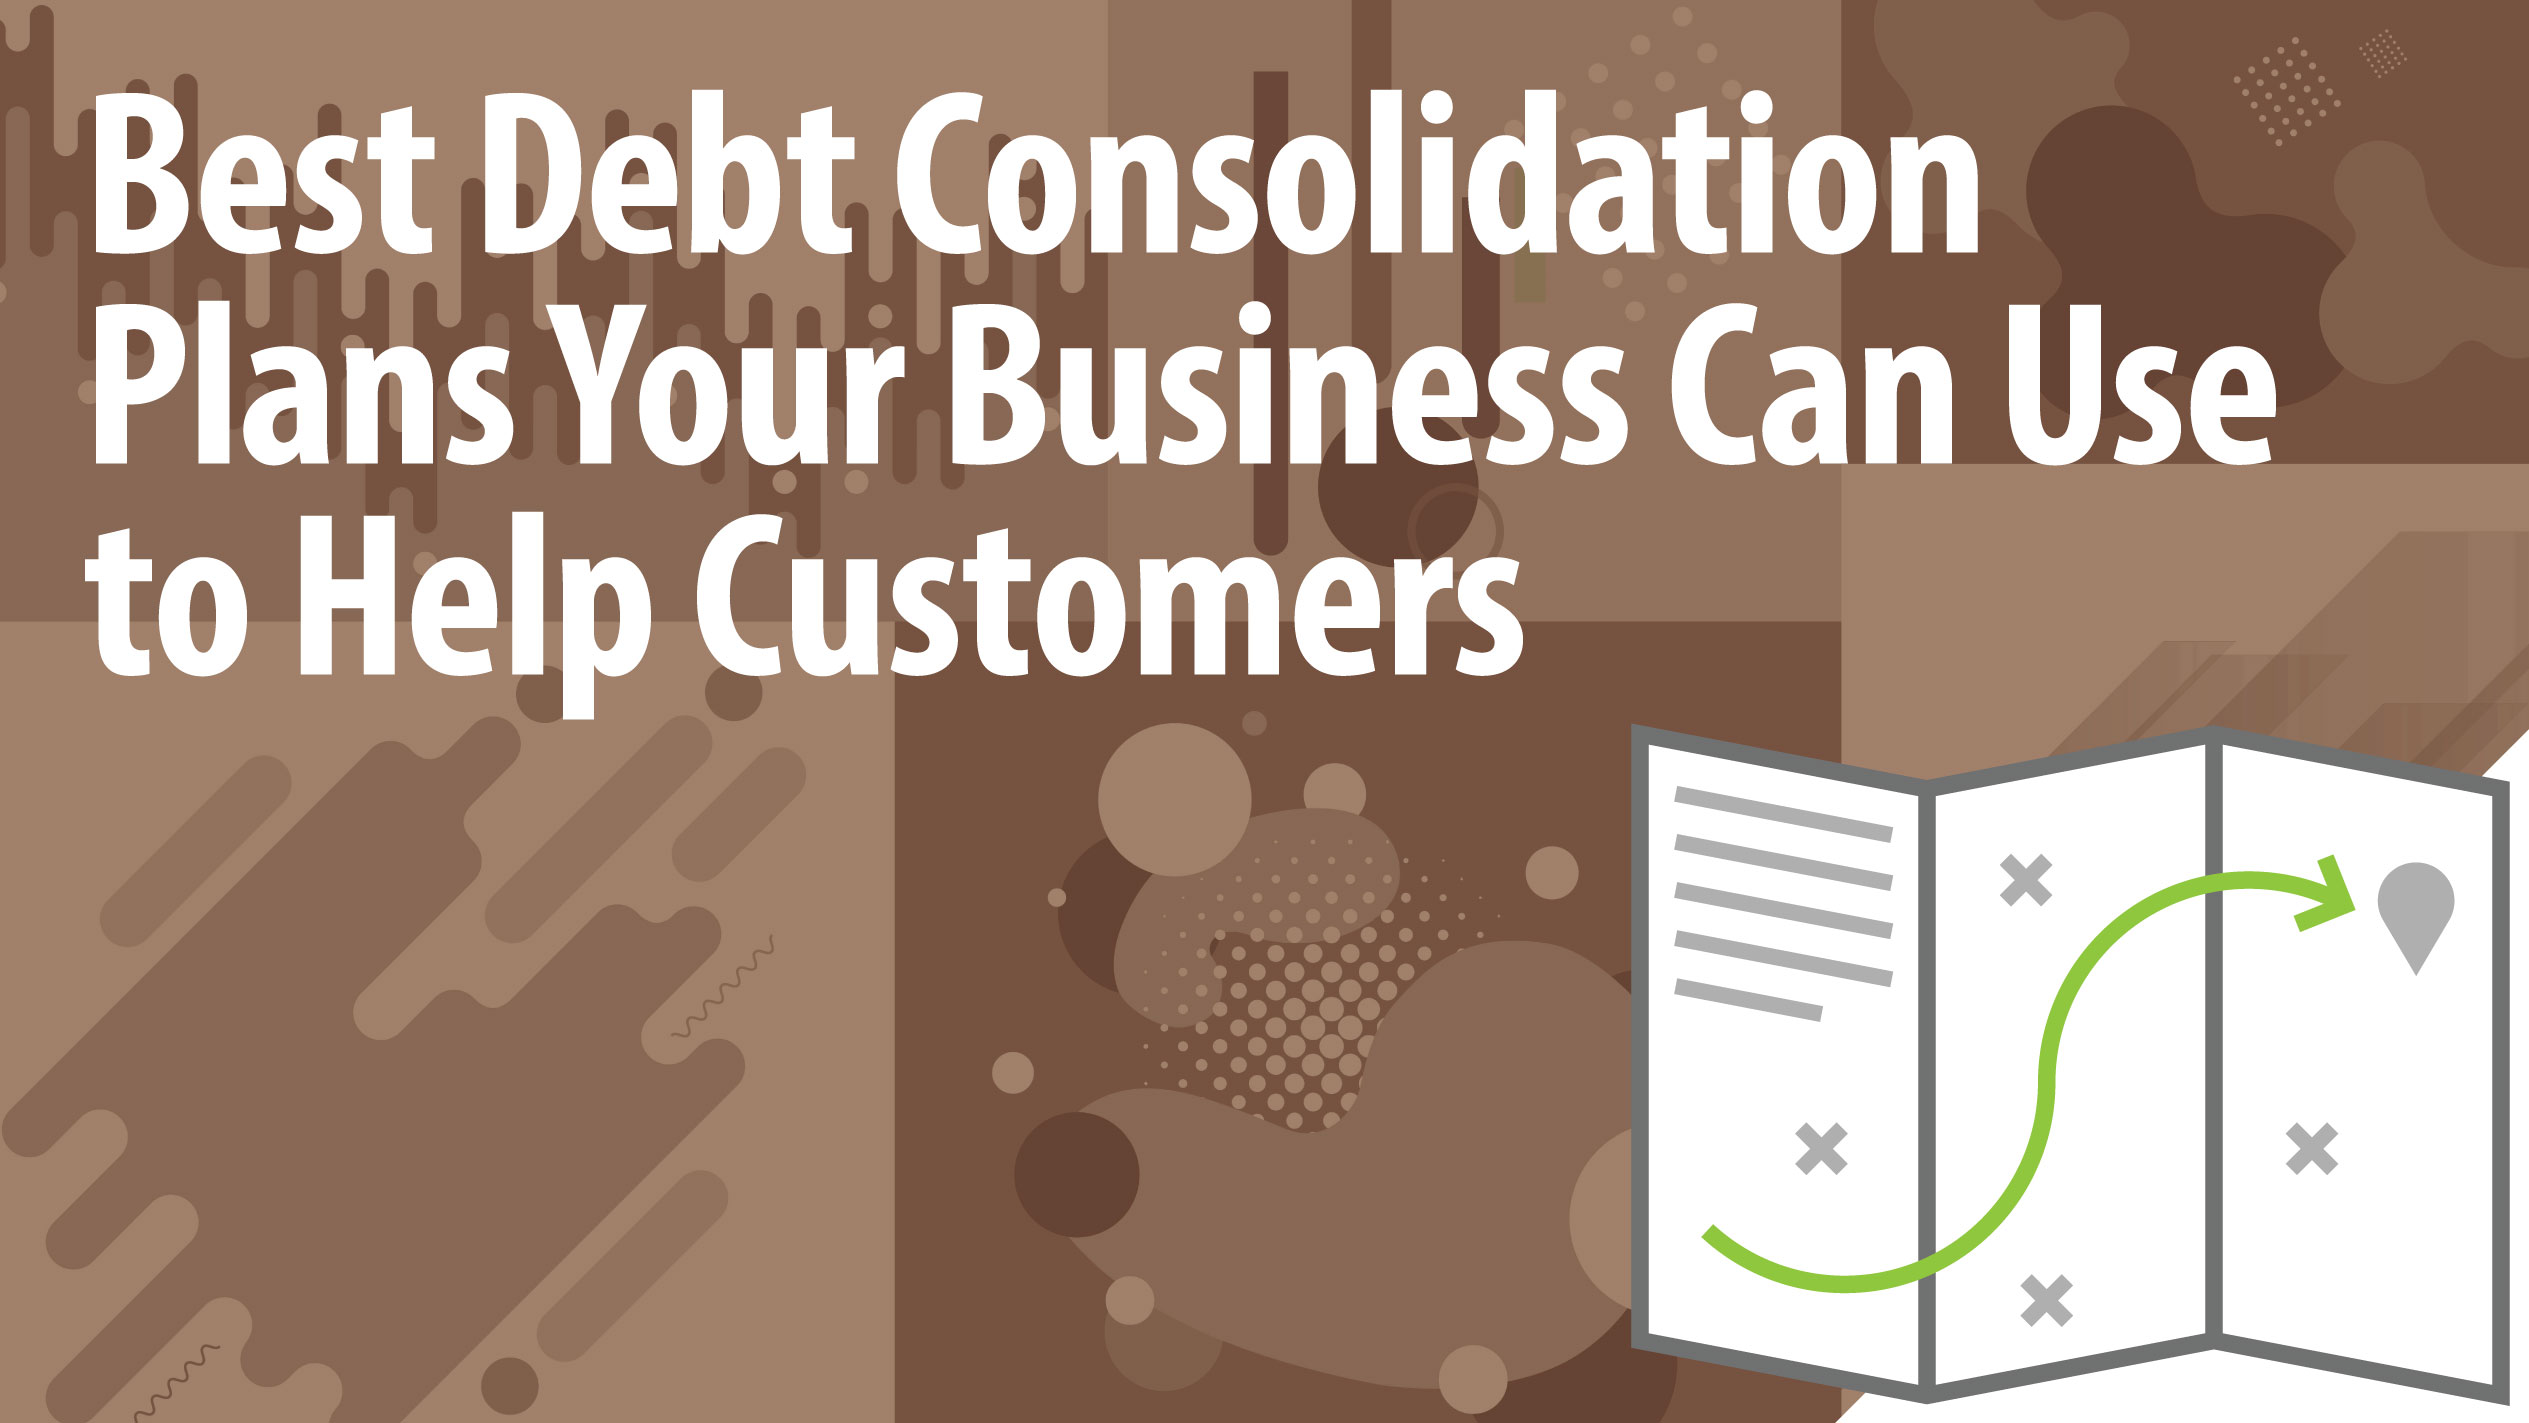 Best Debt Consolidation Plans Your Business Can Use to Help Customers